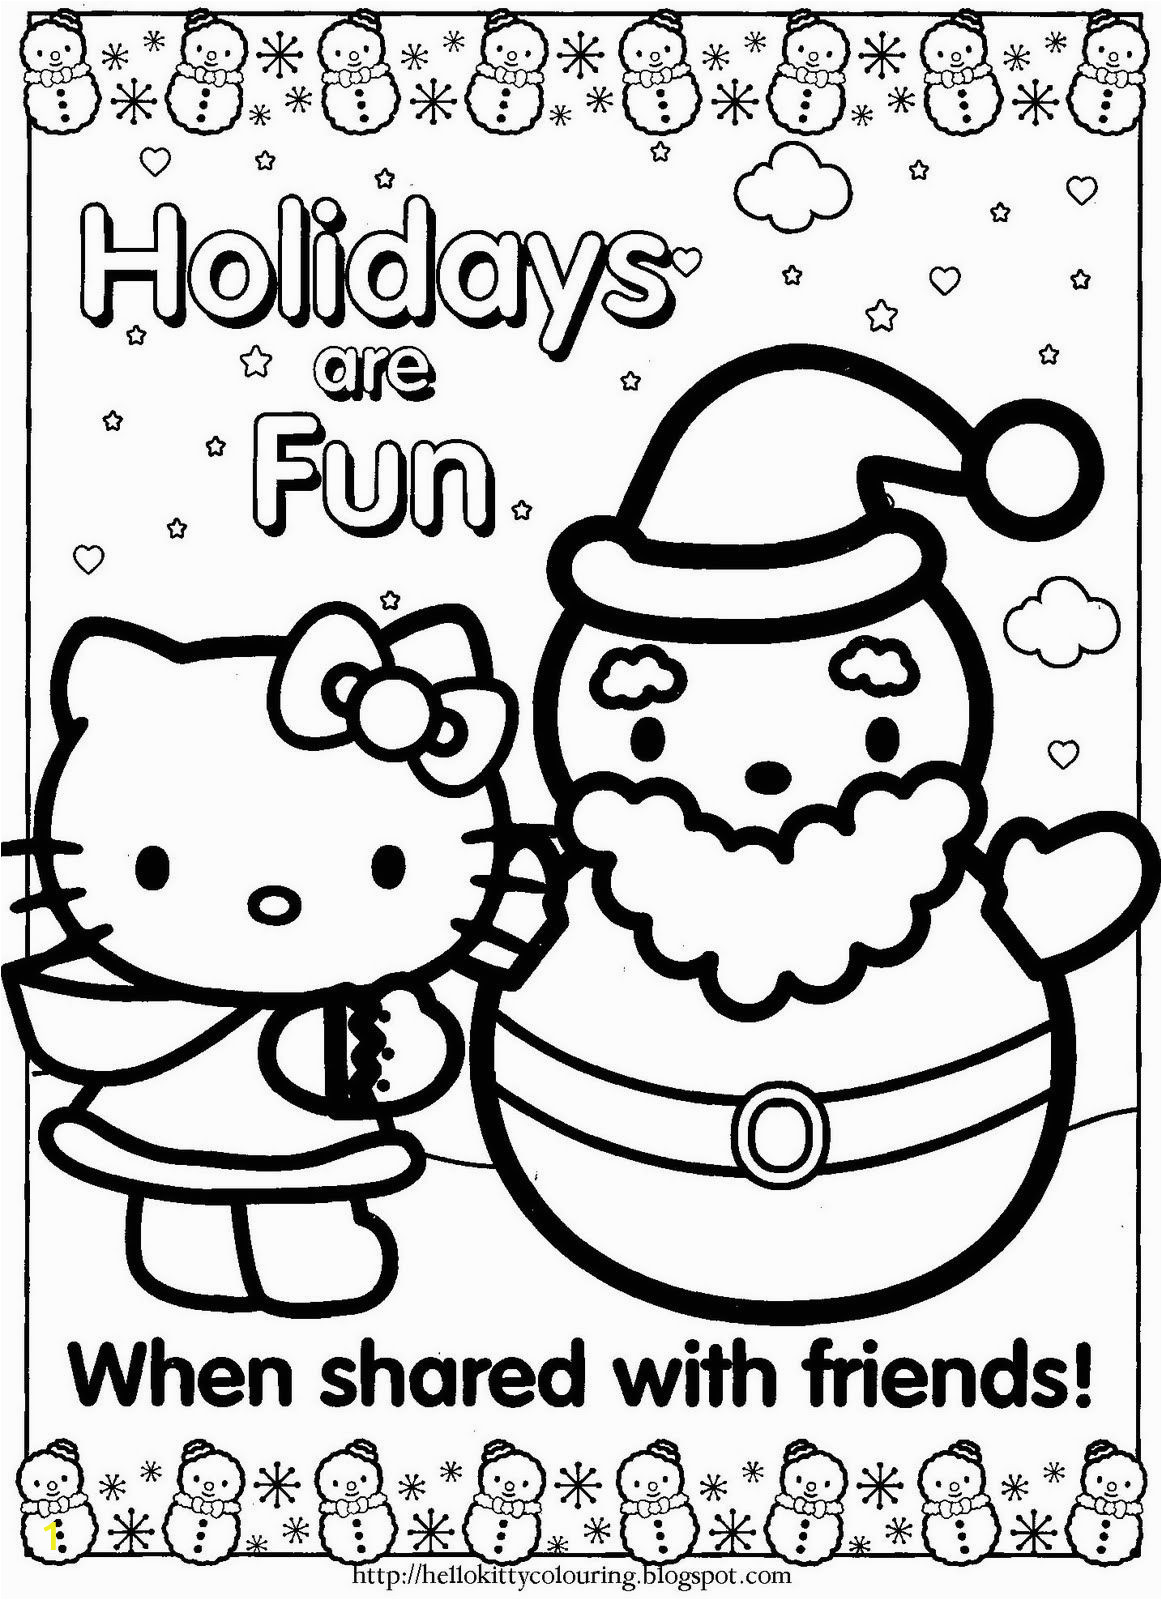 Hello Kitty with Hearts Coloring Pages | divyajanani.org